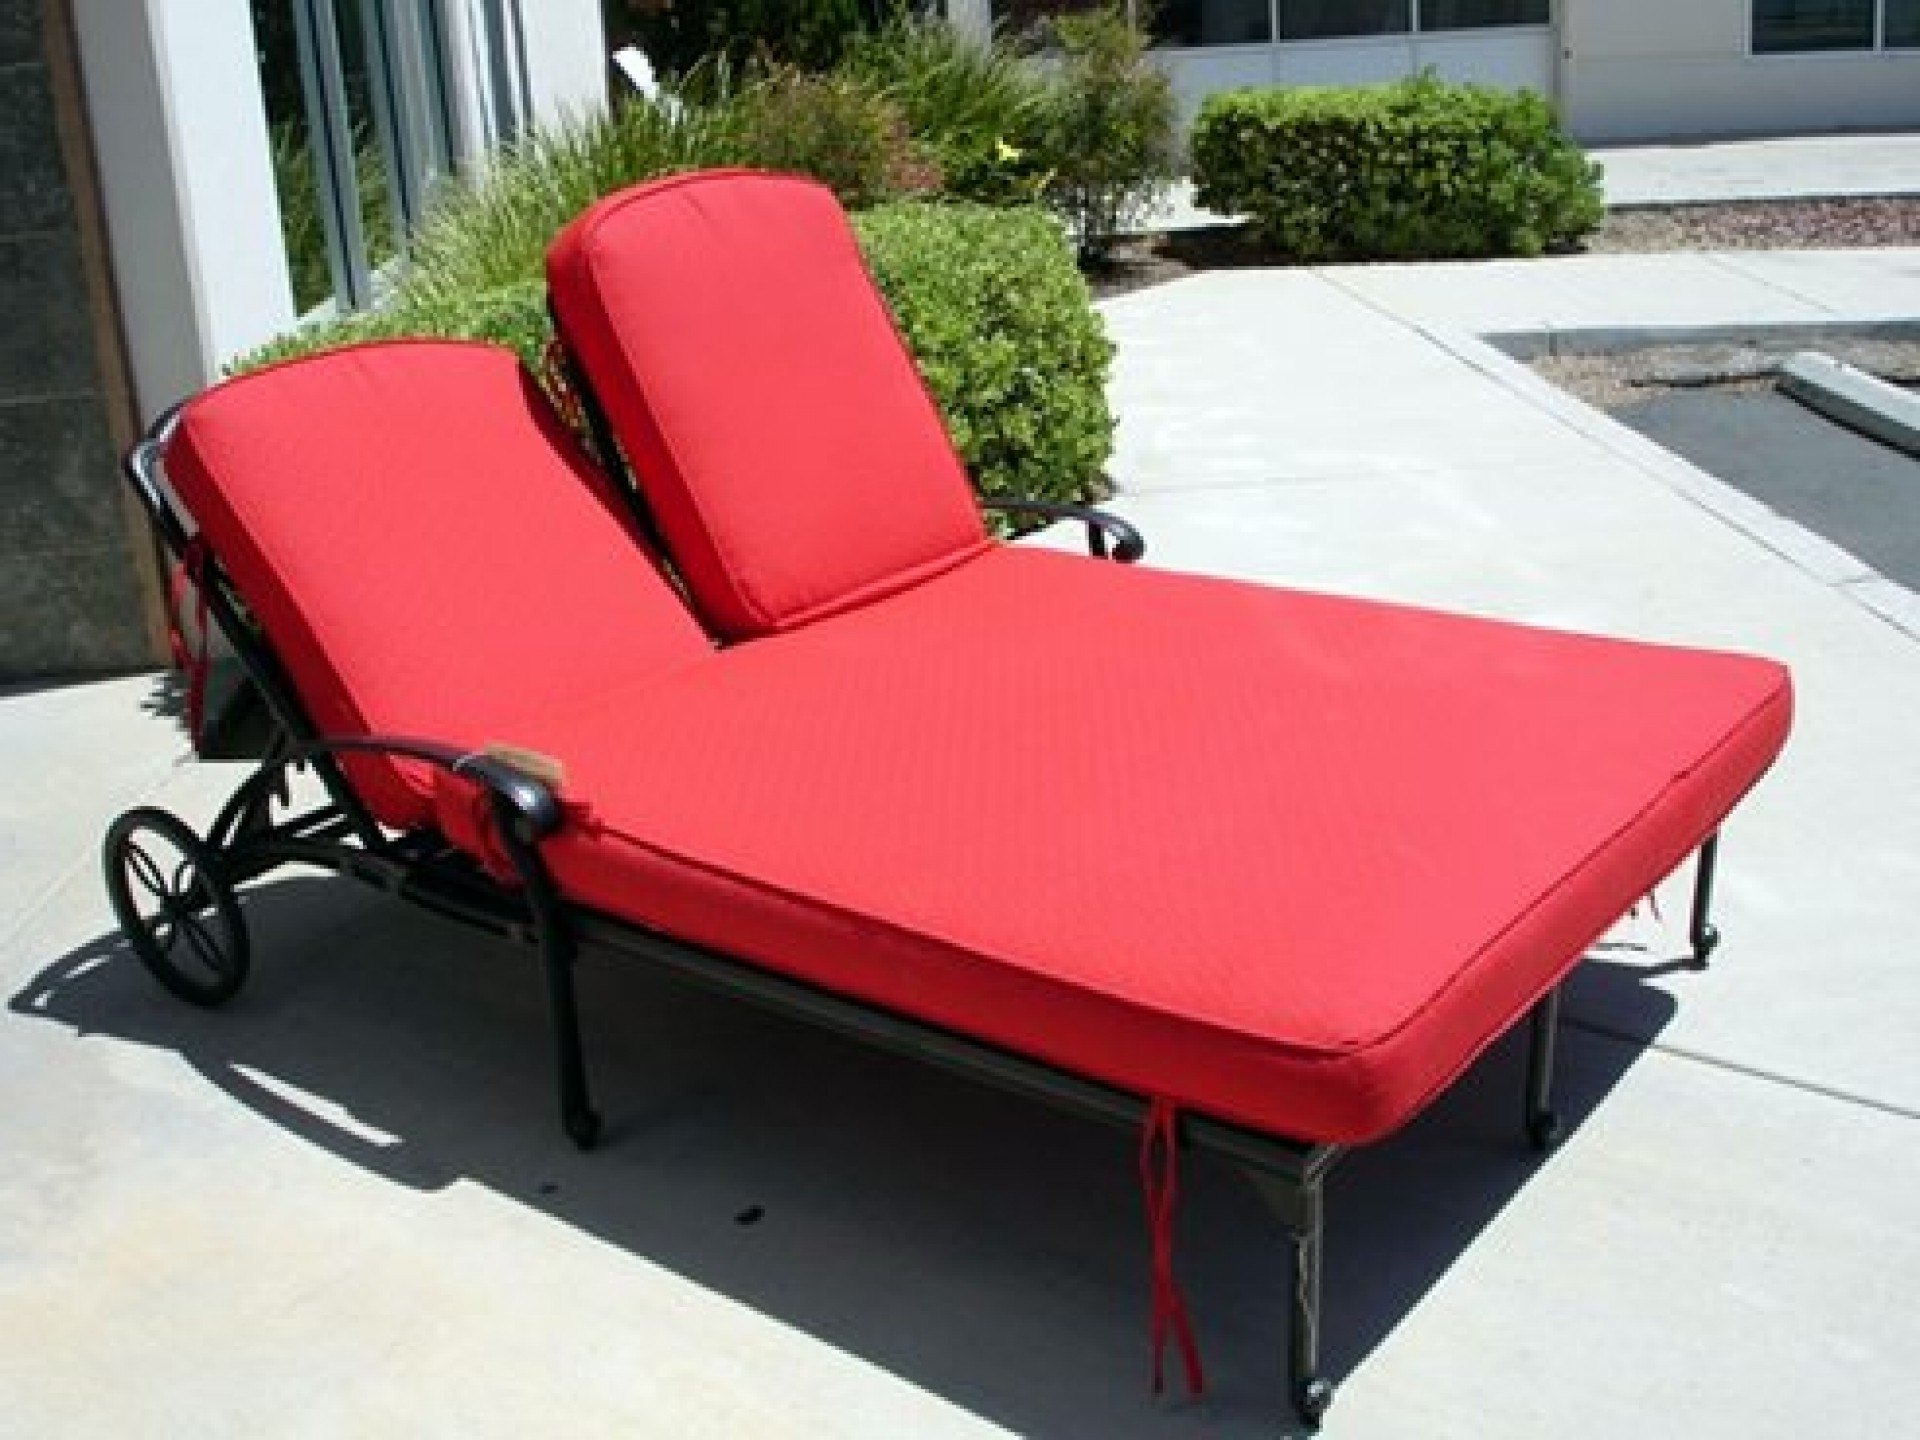 Convertible Chair : For Outside Furniture Chaise Lounge Chair Pads For Widely Used Black Outdoor Chaise Lounge Chairs (View 5 of 15)